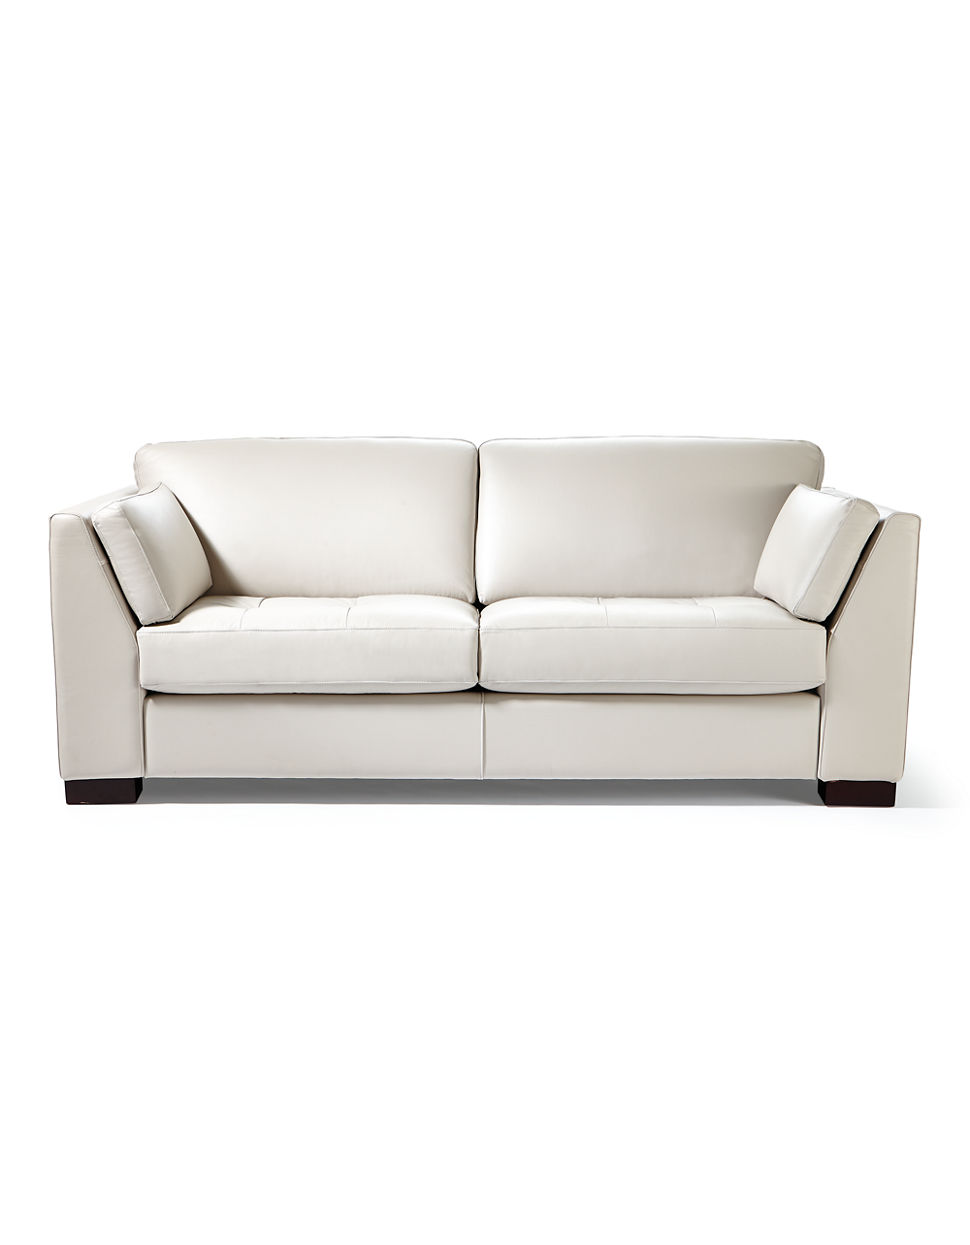 theo condo sofa  hudson's bay -    true fit corporation true fit privacy policy  true fit termsof use